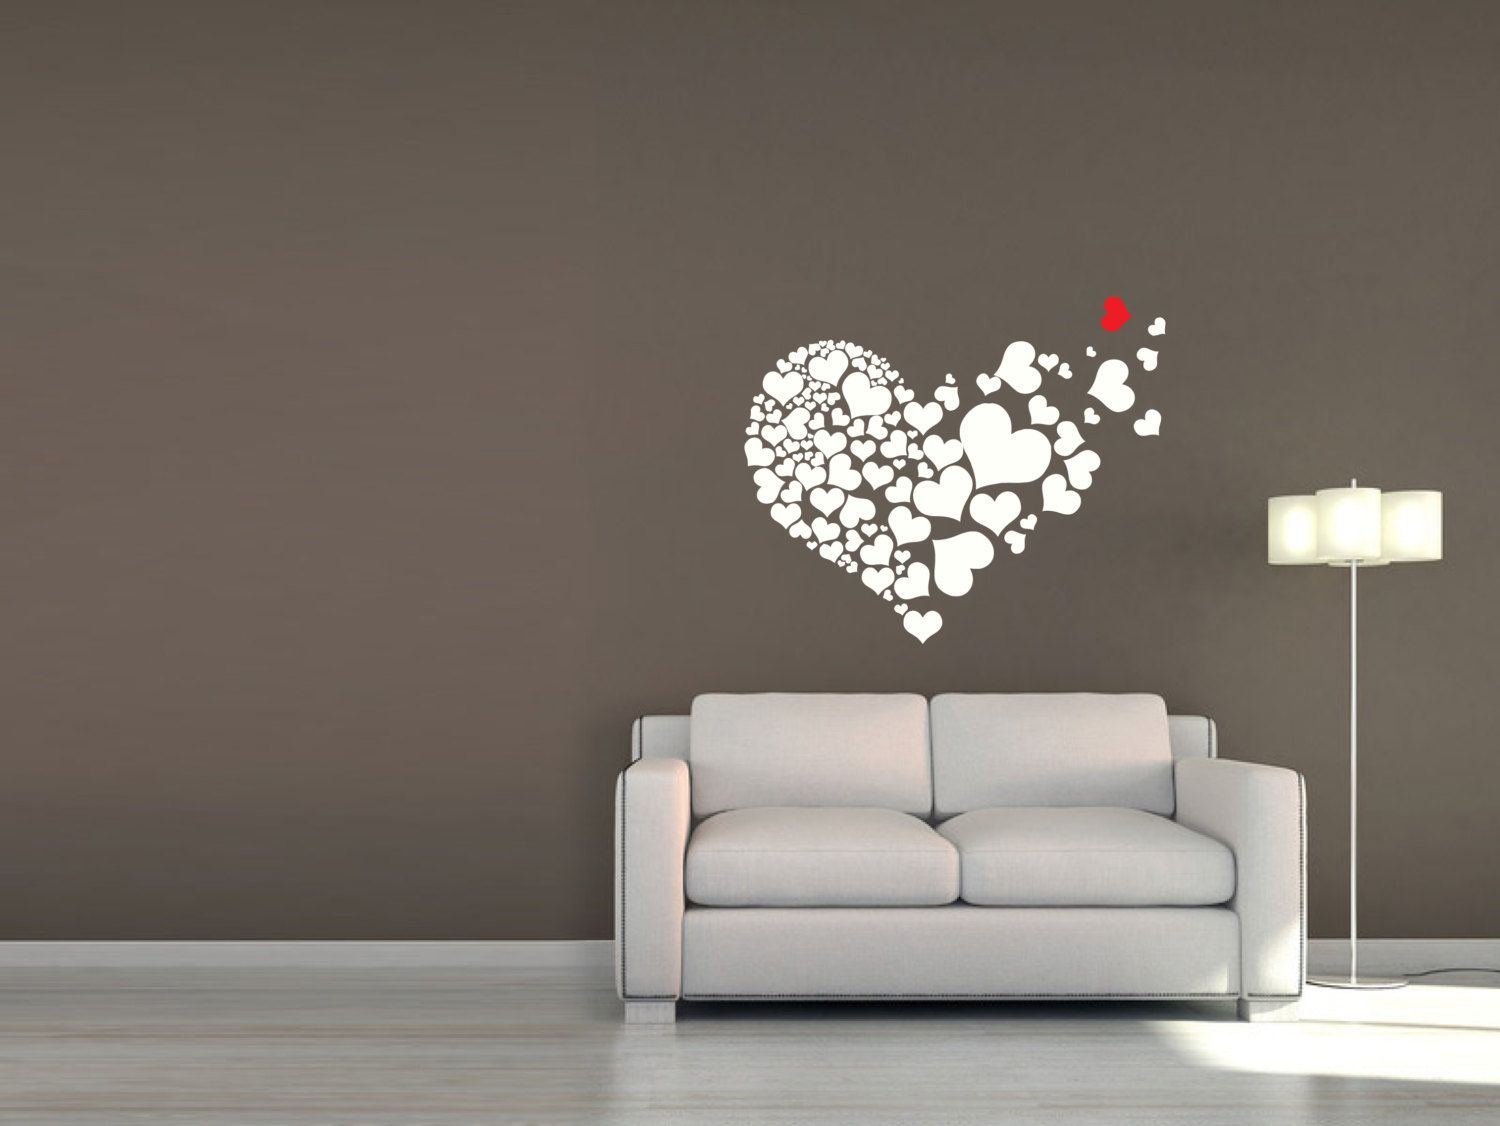 Wall Sticker Love Hearts Removable Heart Design In Black Grey White Or Red Romantic Bedroom Loungeroom Wall Decal Wall Stickers Love Wall Decor Design Wall Sticker Design